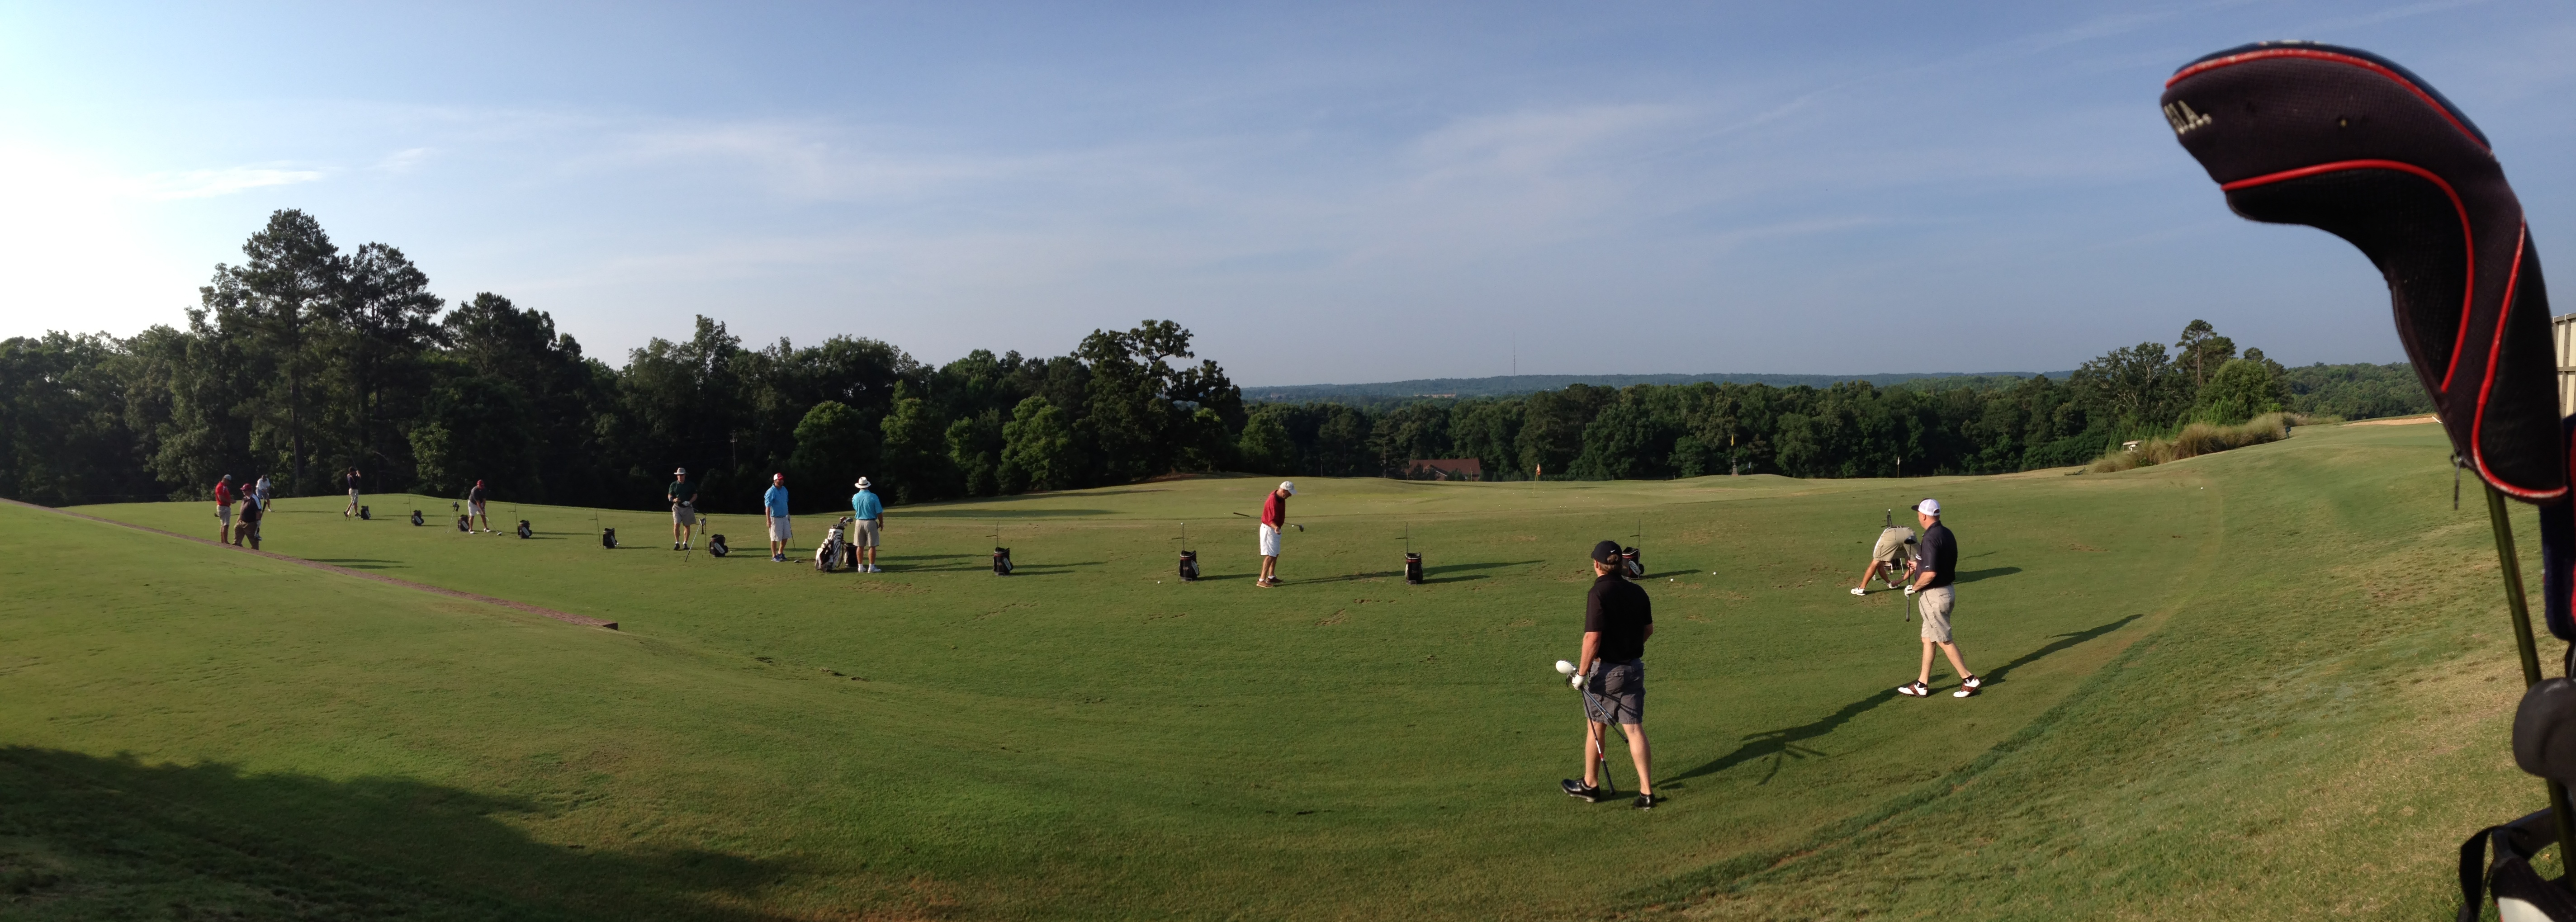 10th Annual Coach's Golf Tournament at Piedmont